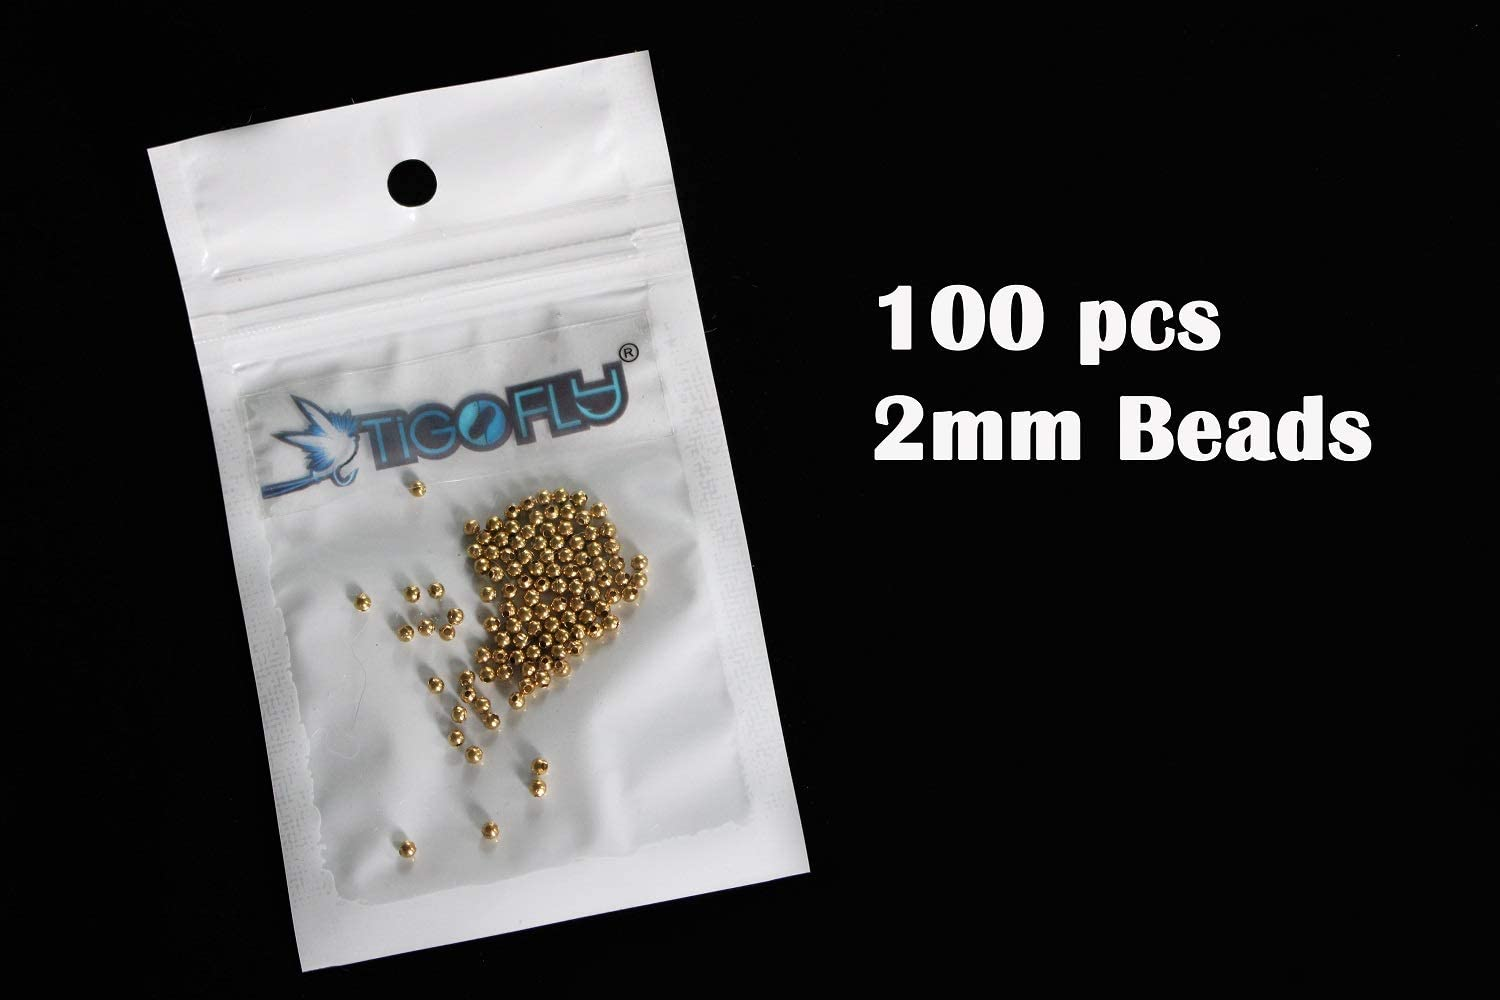 Tigofly 100 pcs//lot 2mm//3mm//4mm Copper Beads Fly Tying Beads Weight Nymph Head Jig Fly Tying Materials Fly Fishing